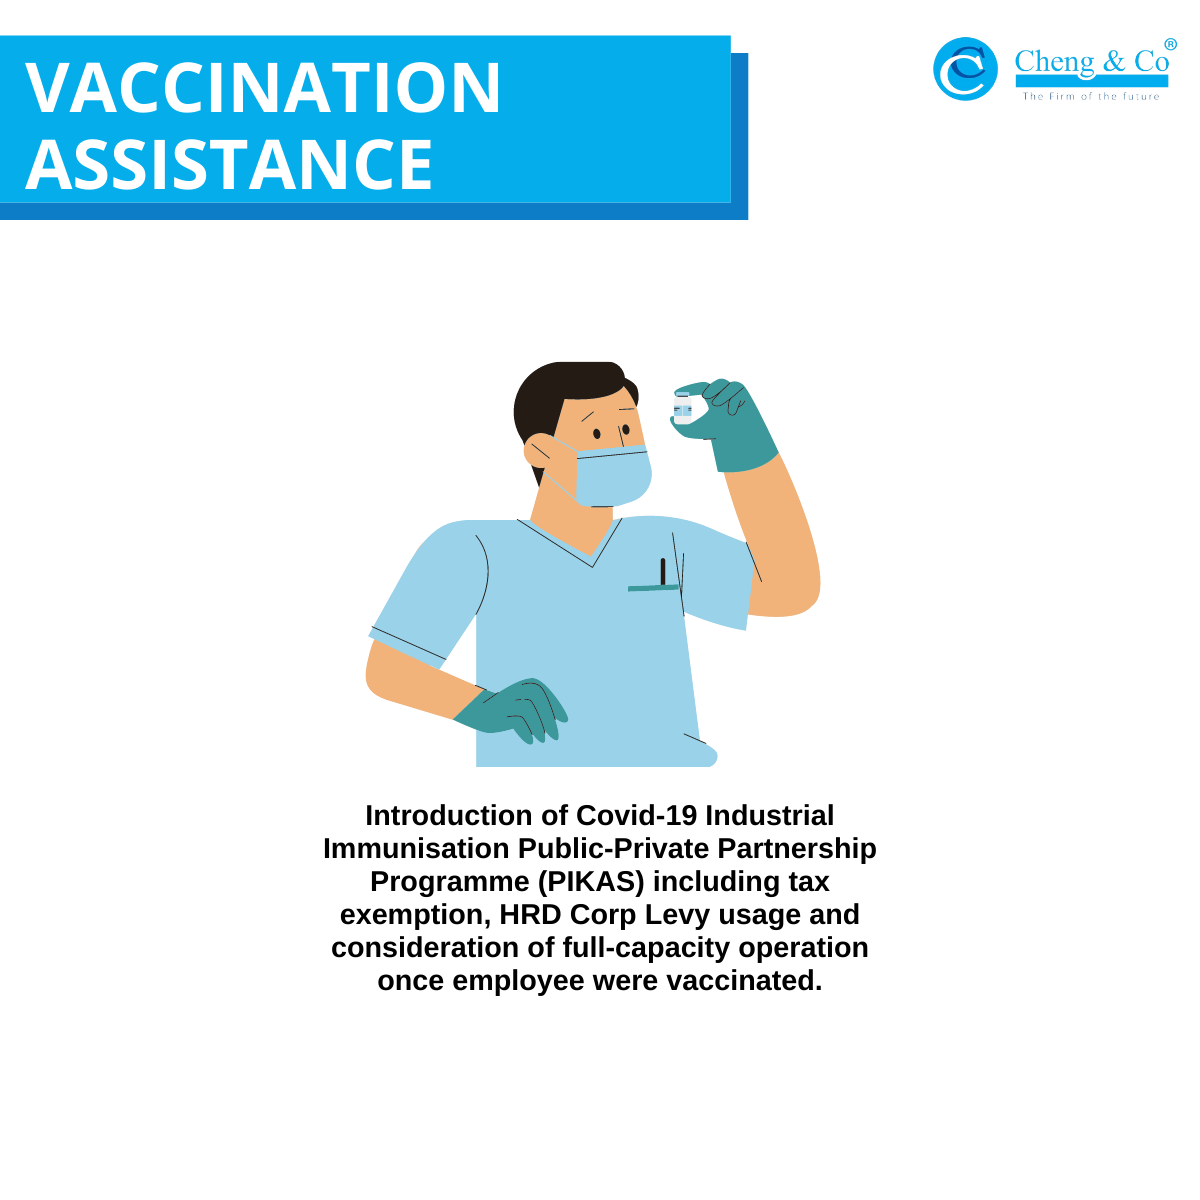 PEMULIH Vaccination Assistance